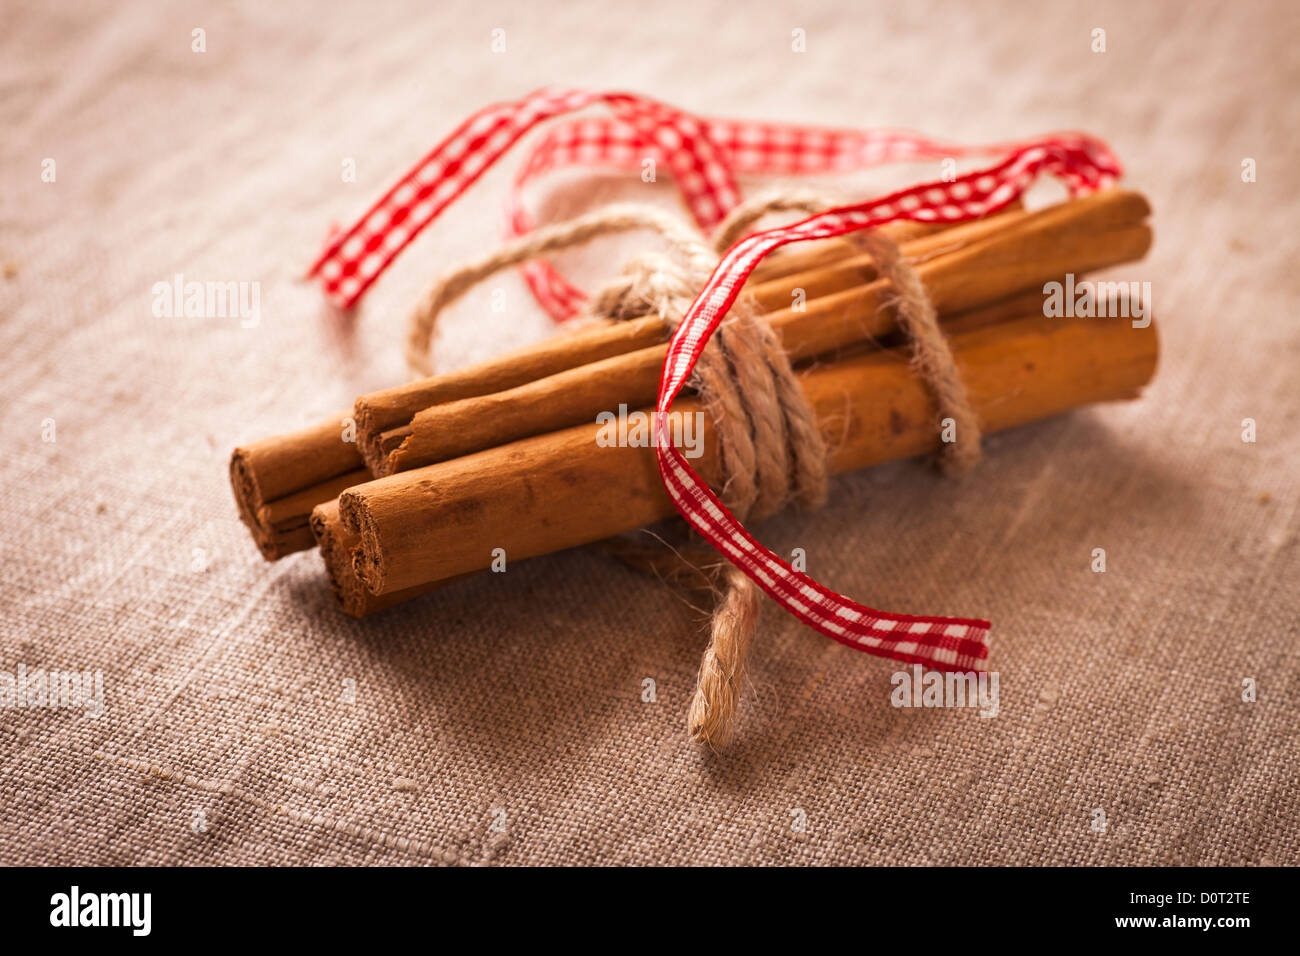 Decorative, sparse christmas arrangement with greeting card copyspace for 'Merry Christmas'-text. Cinnamon - Stock Image